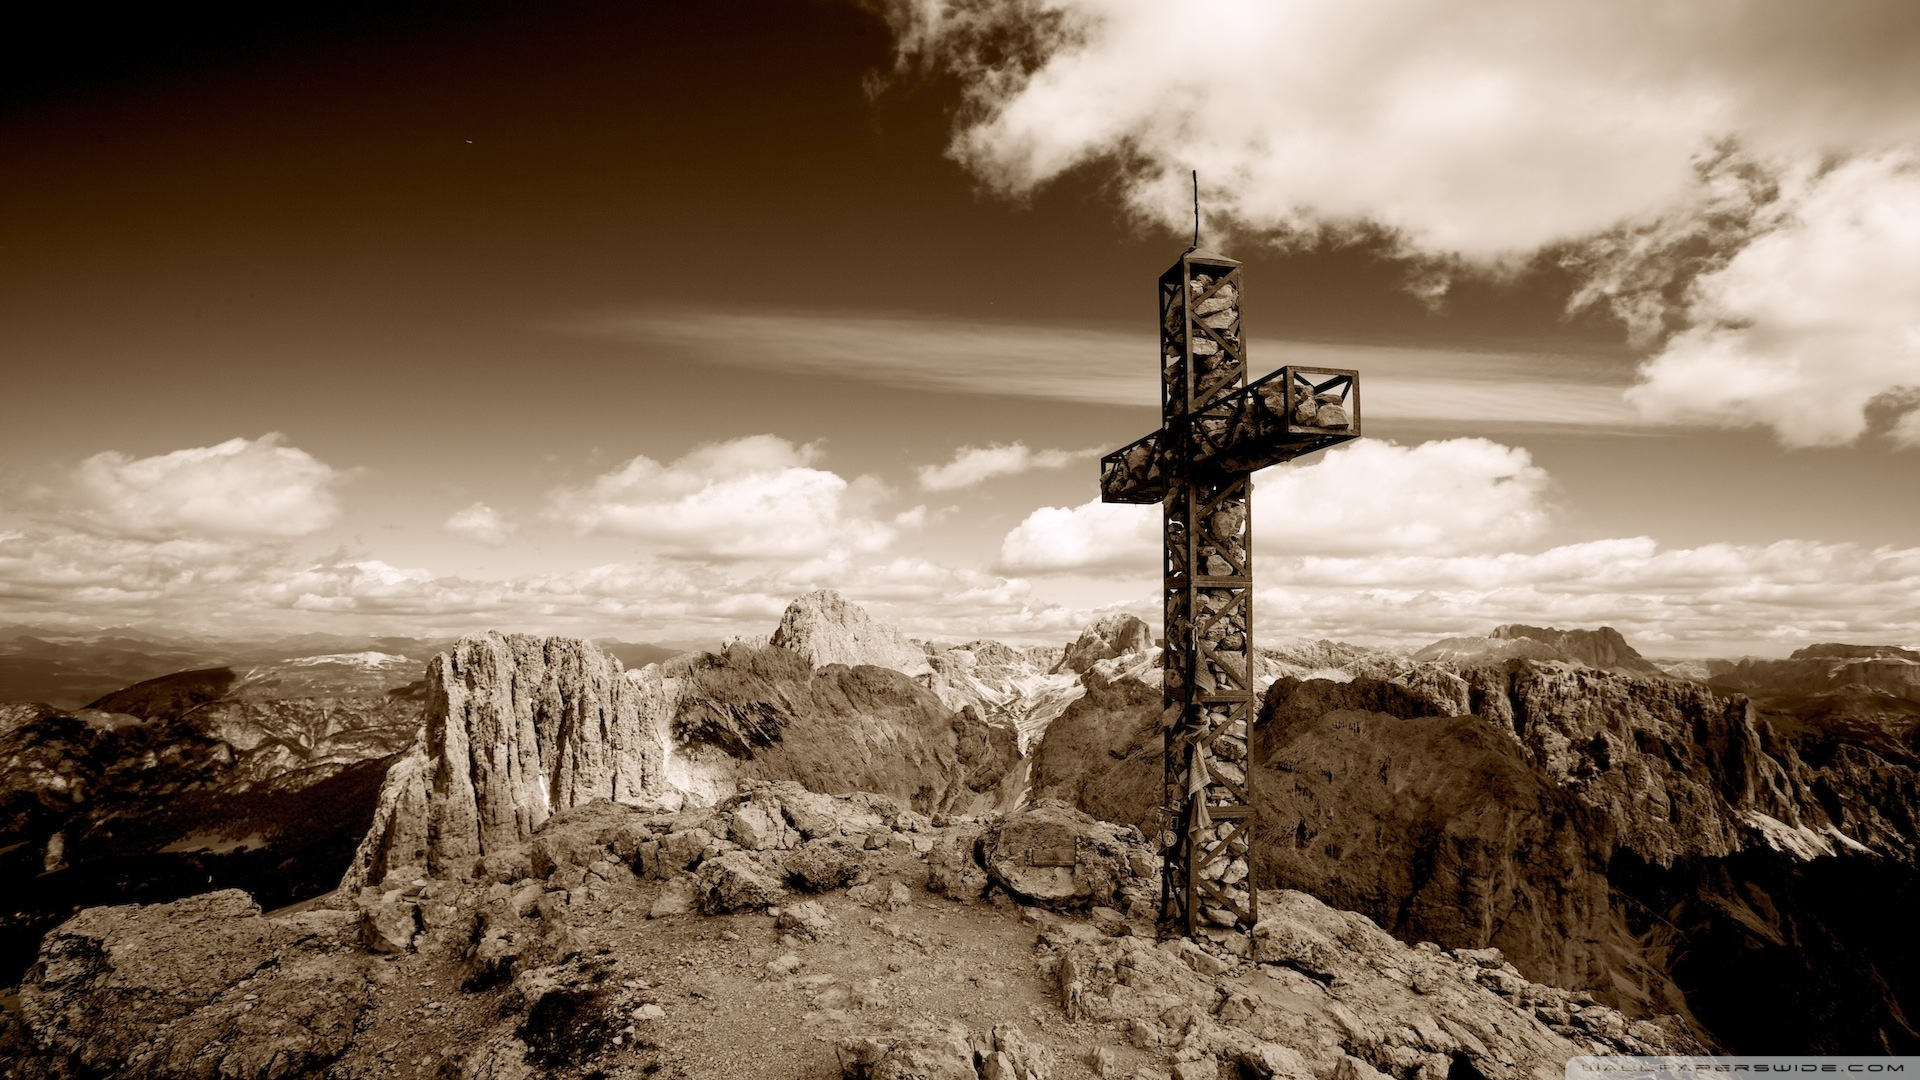 17+ images about Christian Cross - Jesus on the cross, Wallpapers